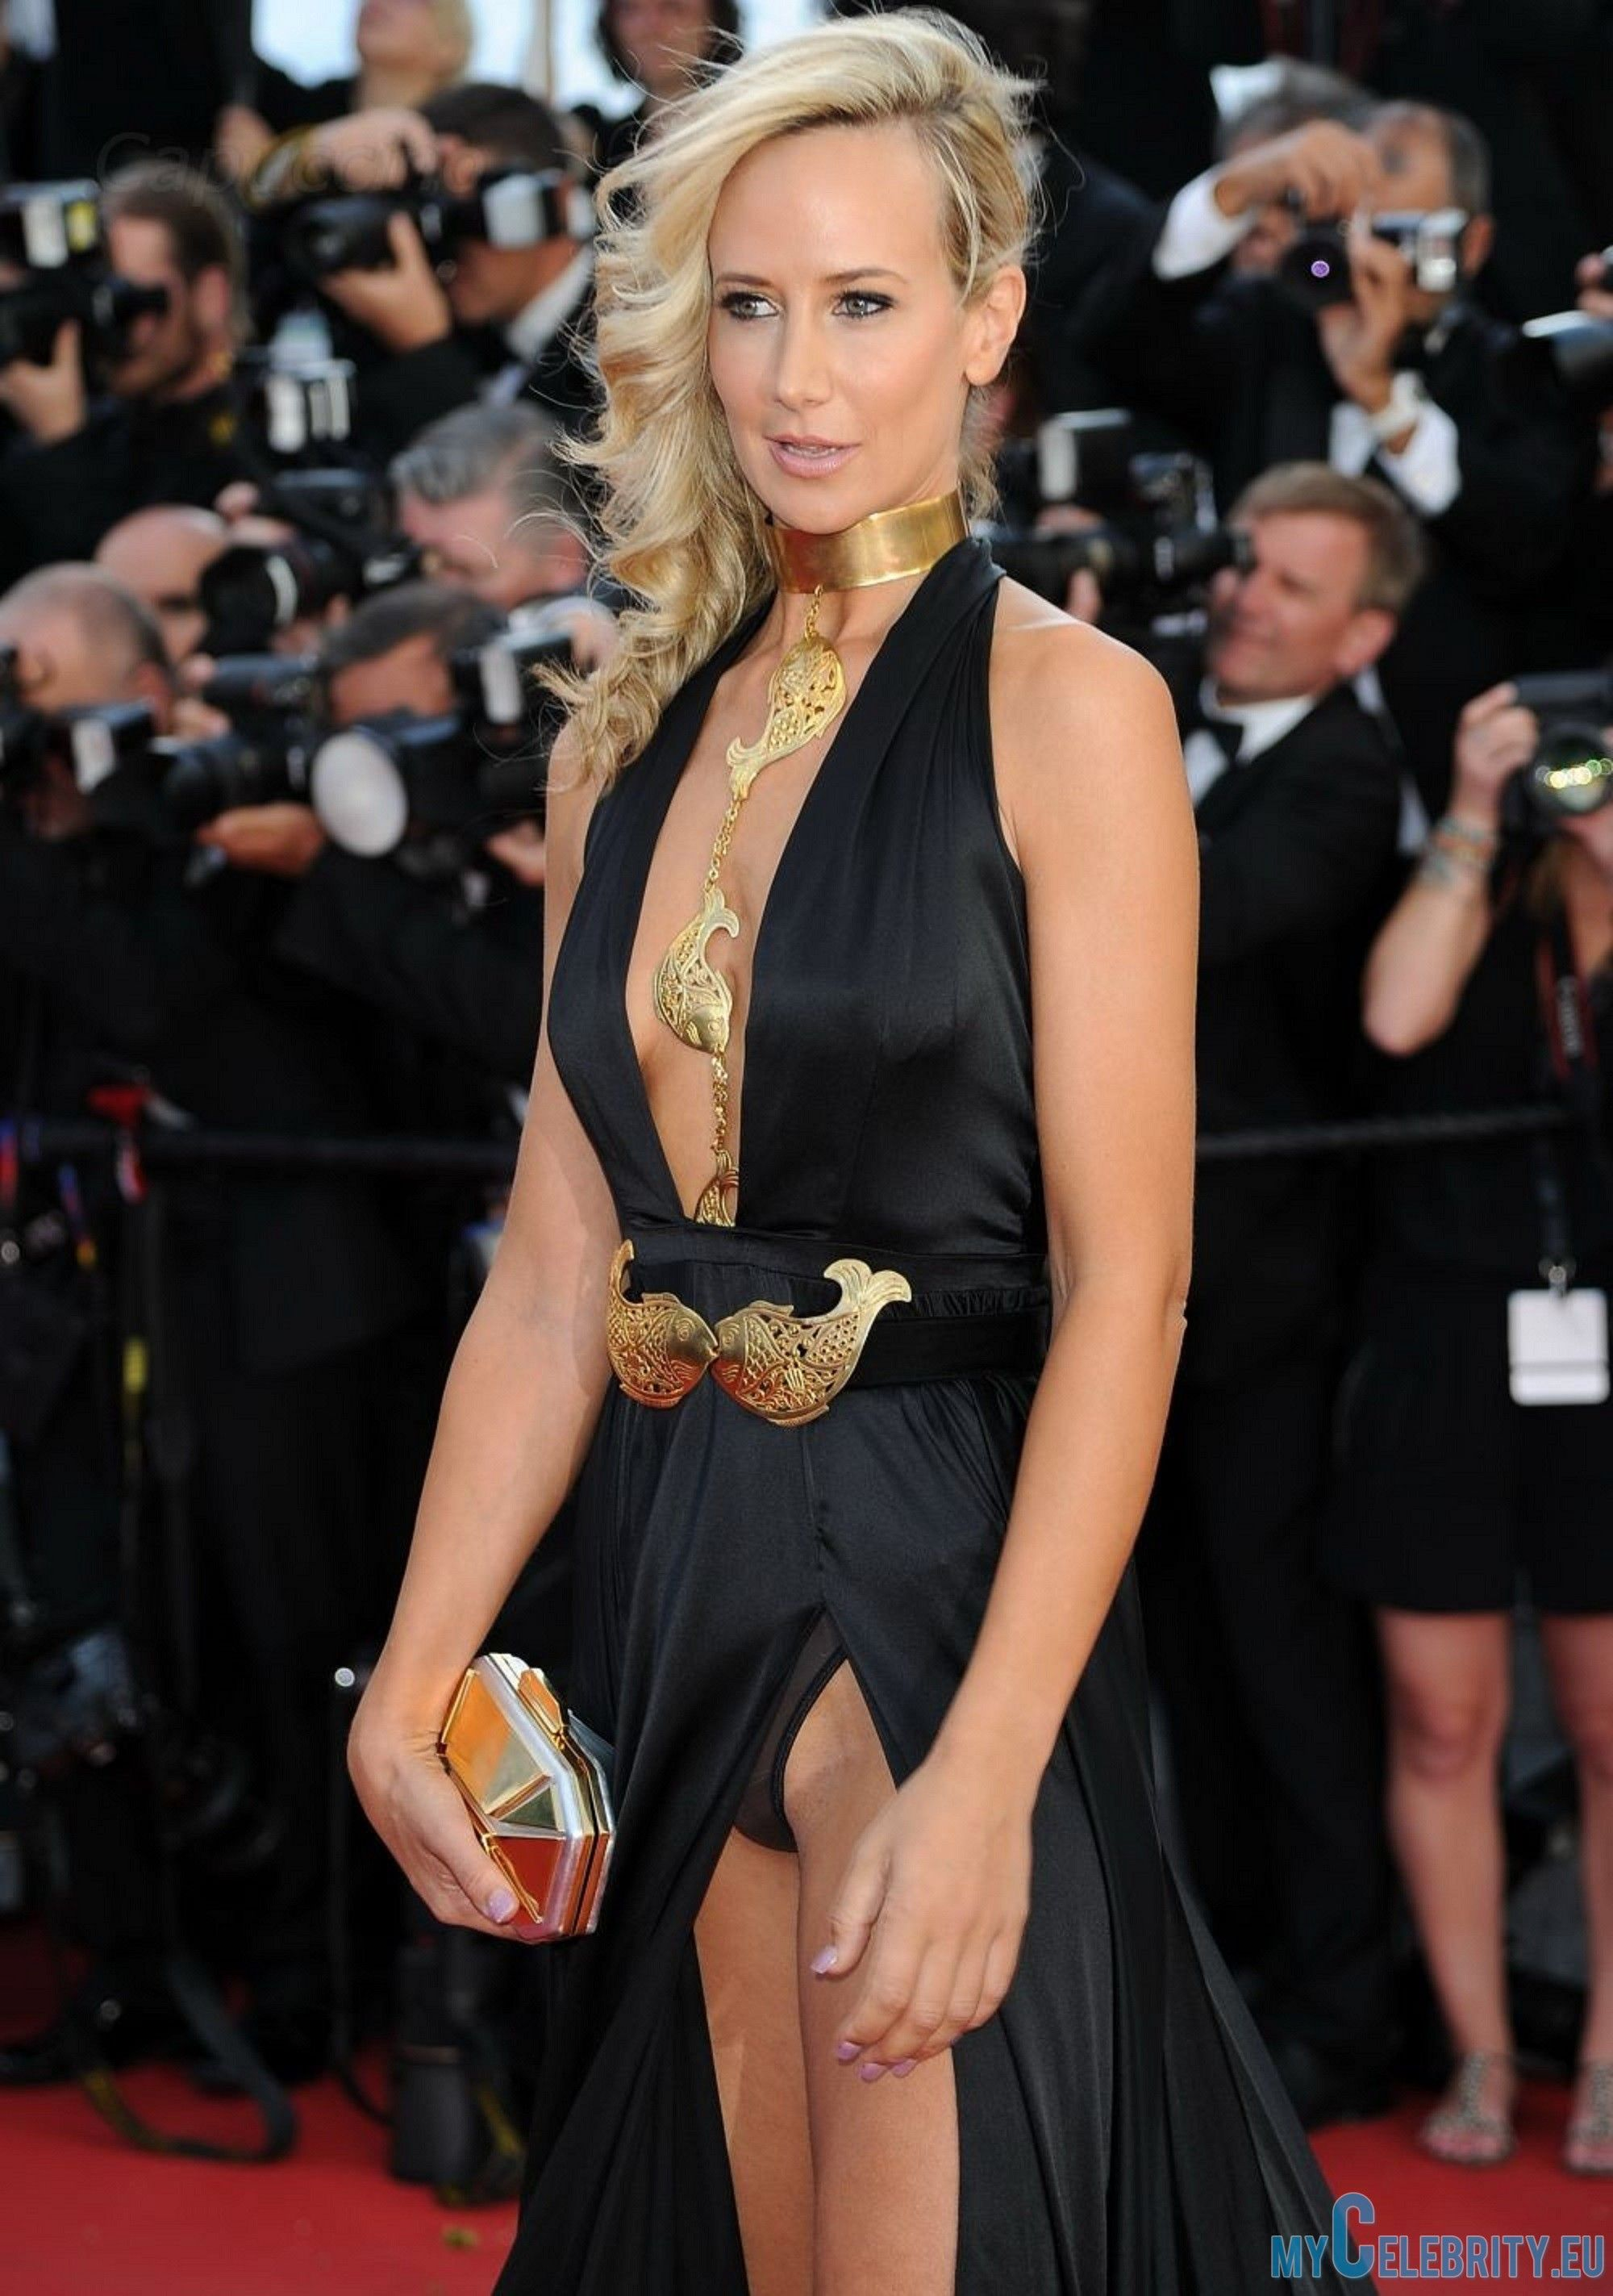 Celebrites Victoria Hervey nudes (17 photos), Sexy, Leaked, Twitter, cleavage 2019